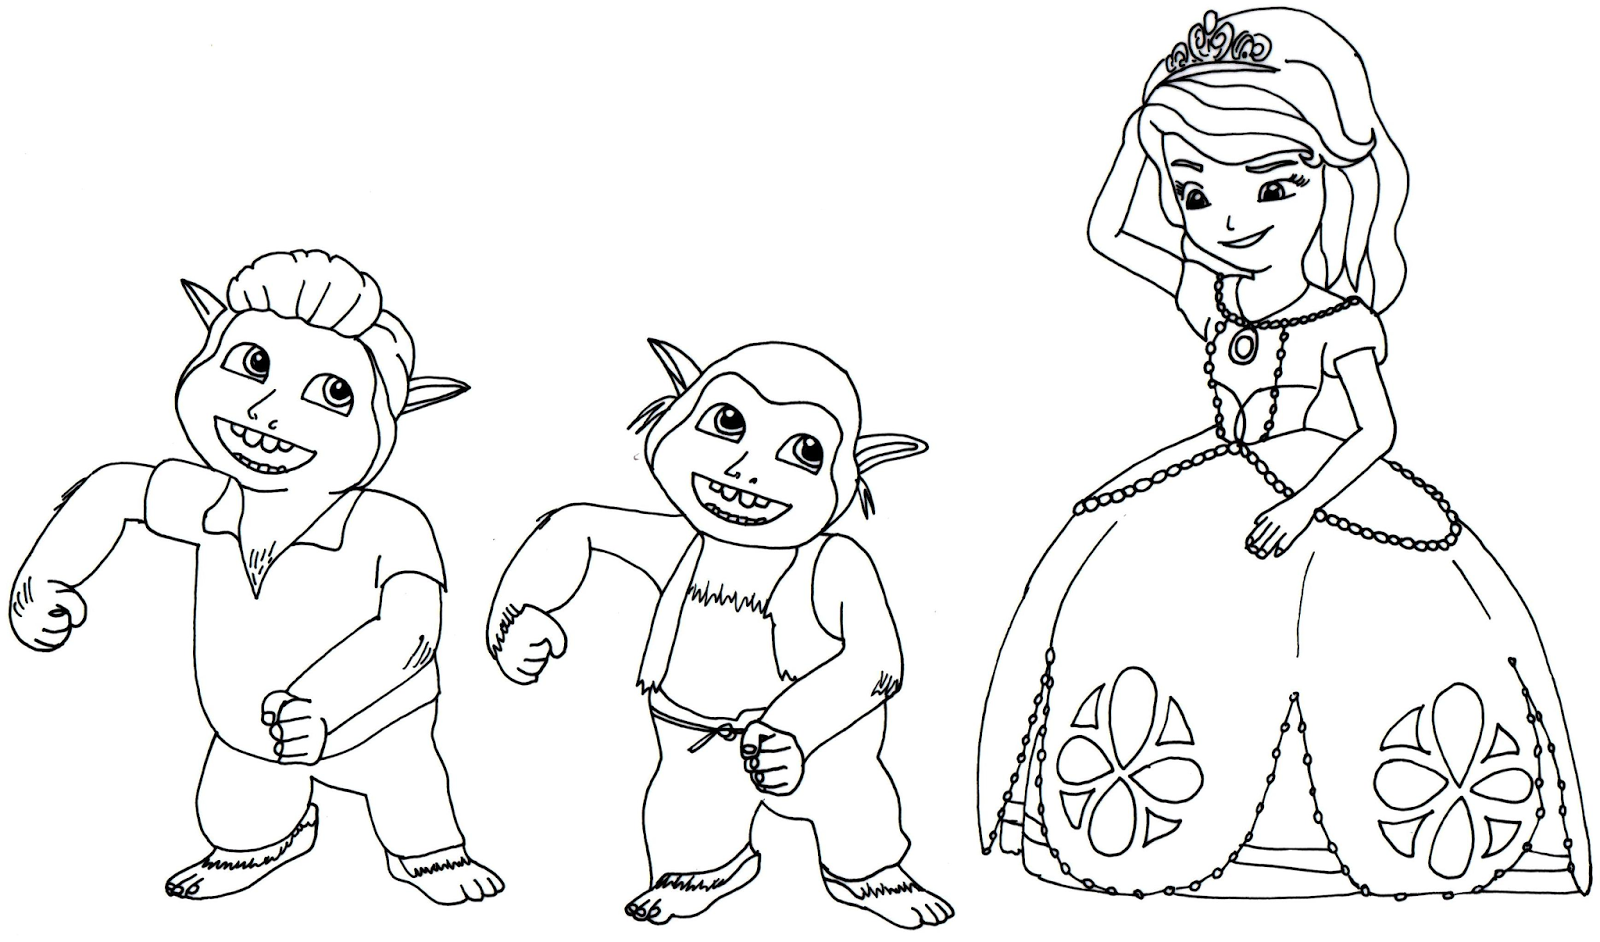 Coloring pages of princess sofia - Princess Sofia Coloring Page Google S Gning